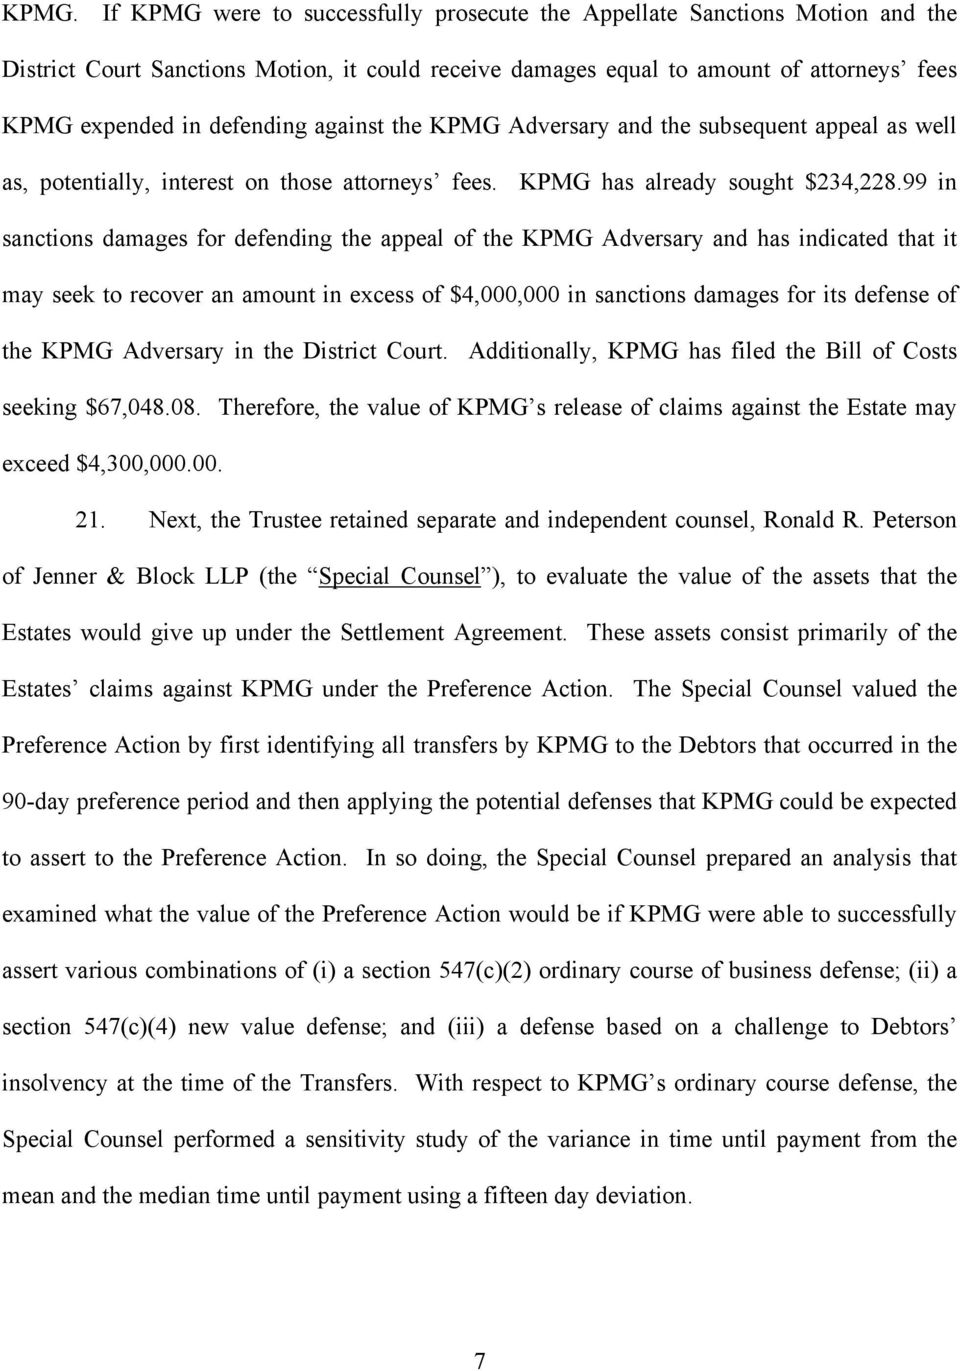 99 in sanctions damages for defending the appeal of the KPMG Adversary and has indicated that it may seek to recover an amount in excess of $4,000,000 in sanctions damages for its defense of the KPMG